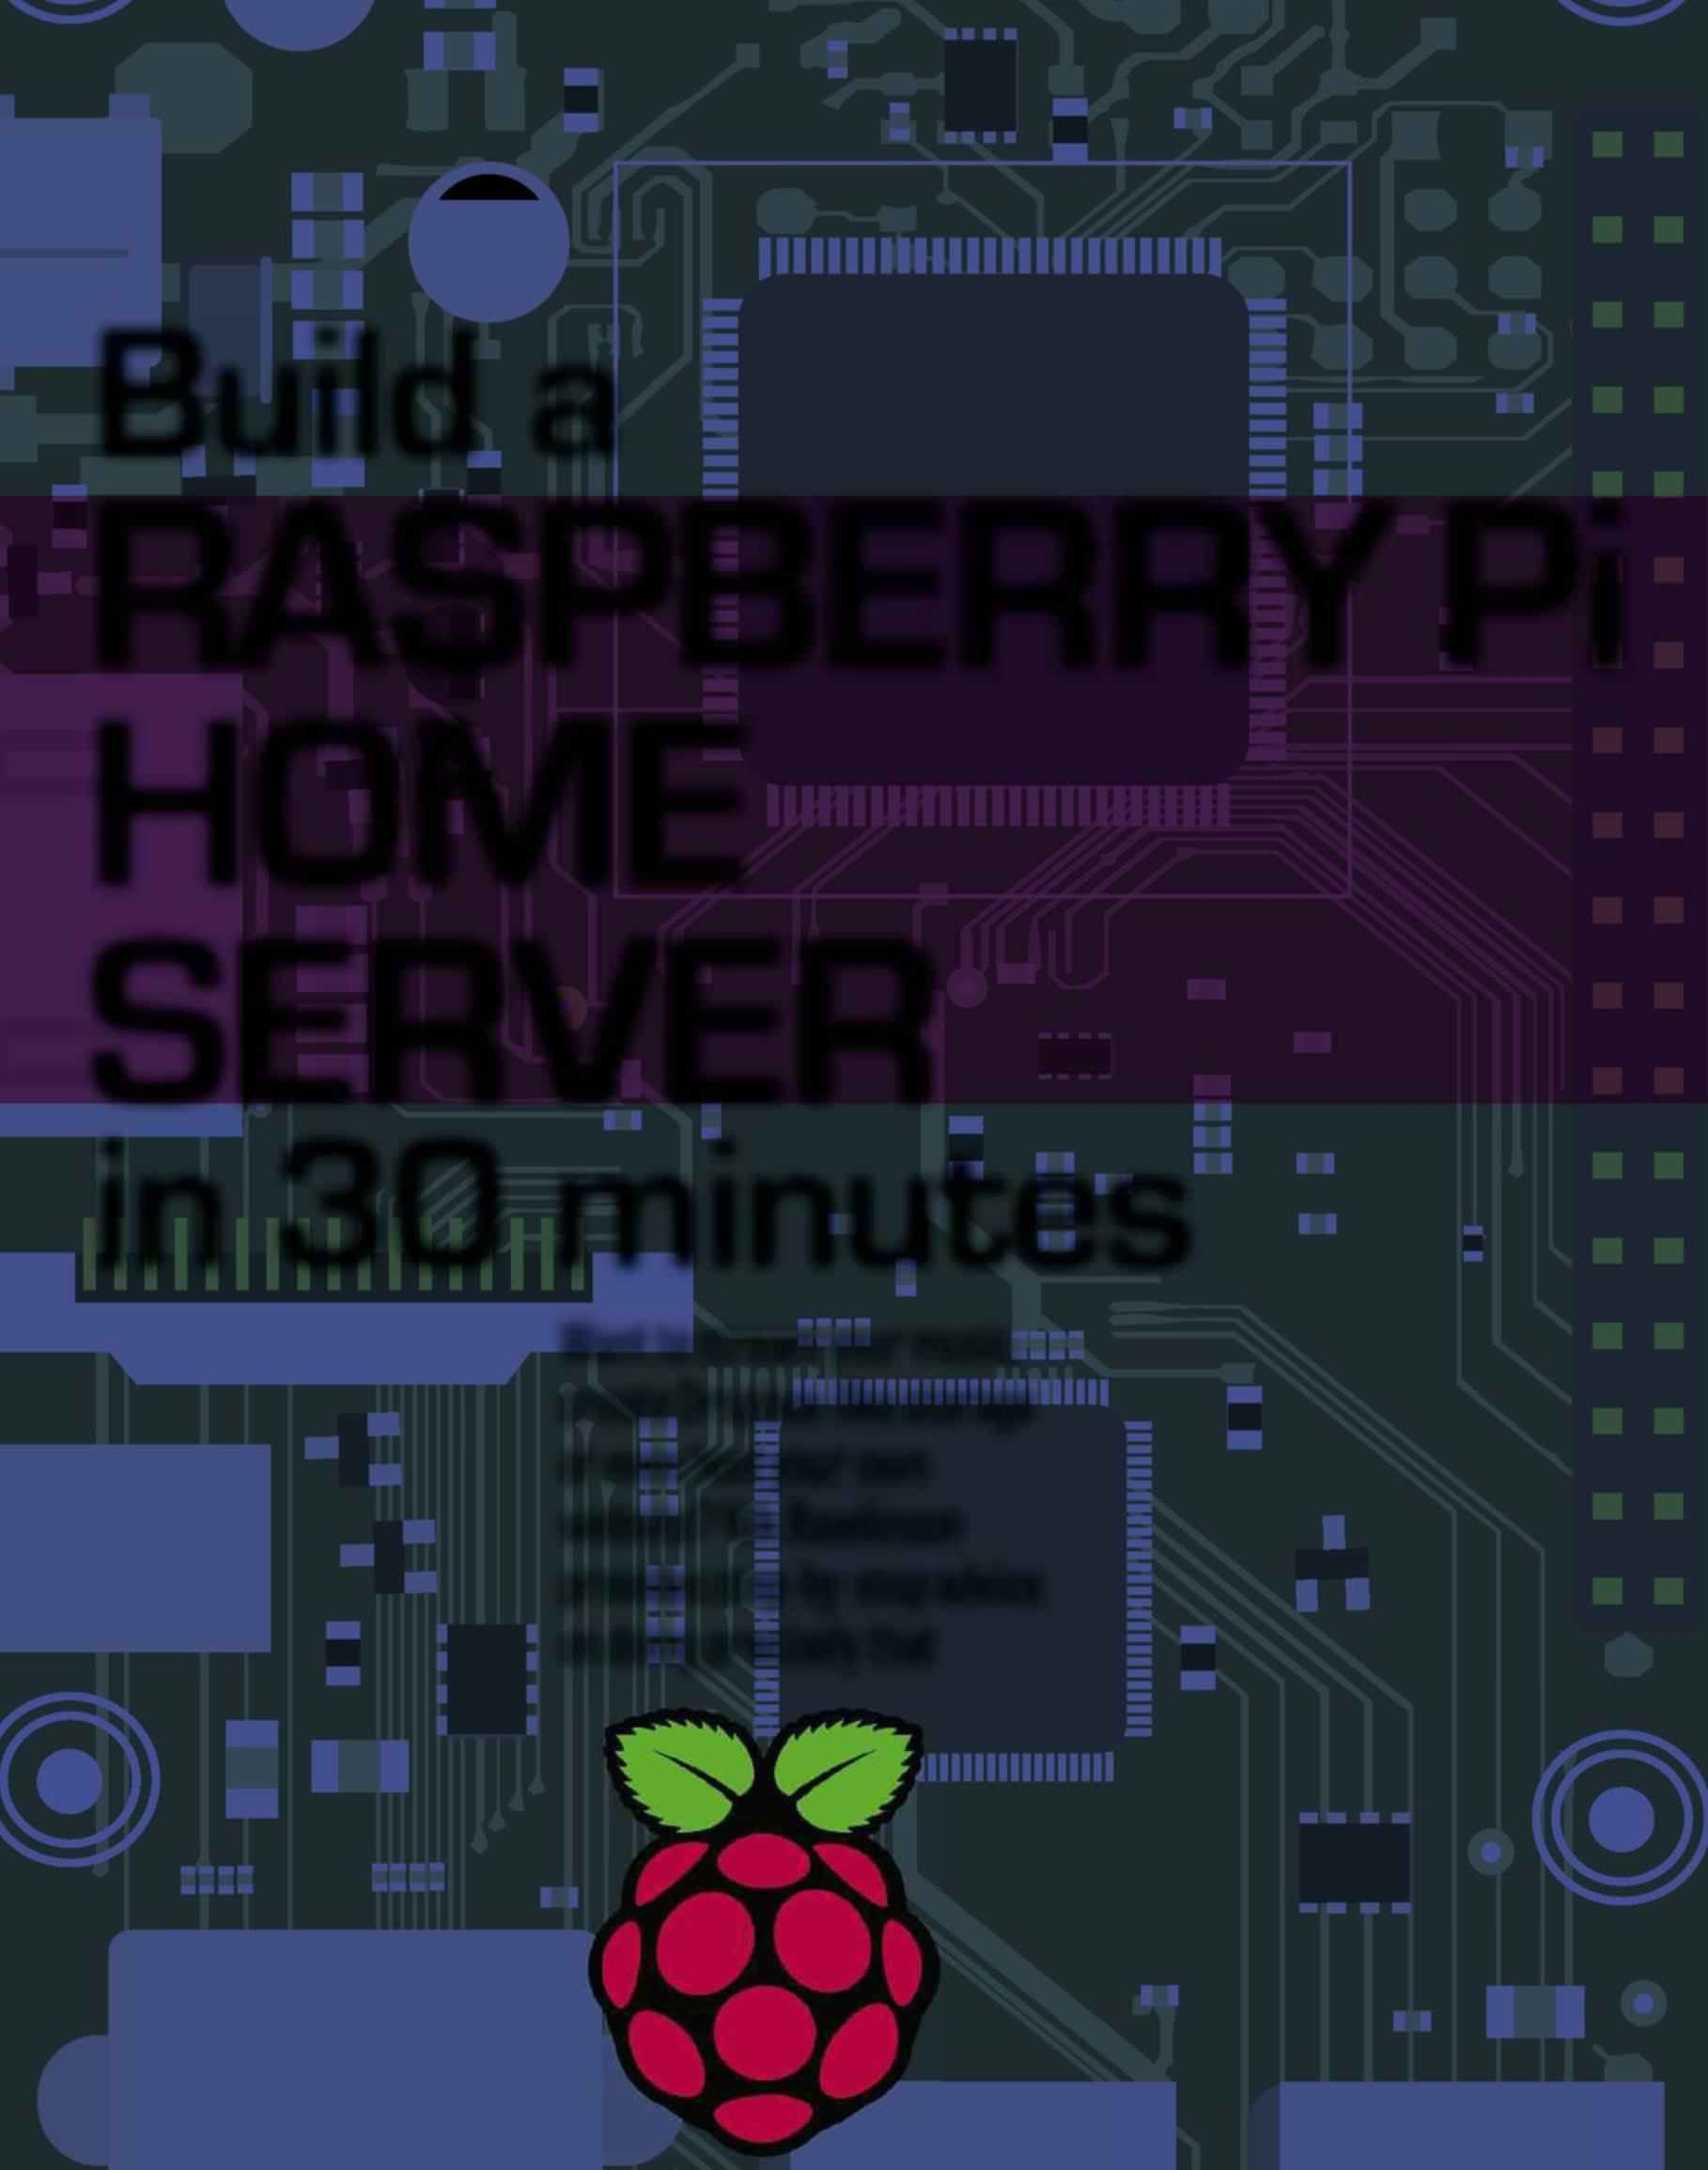 Build A Raspberry Pi Home Server In 30 Minutes